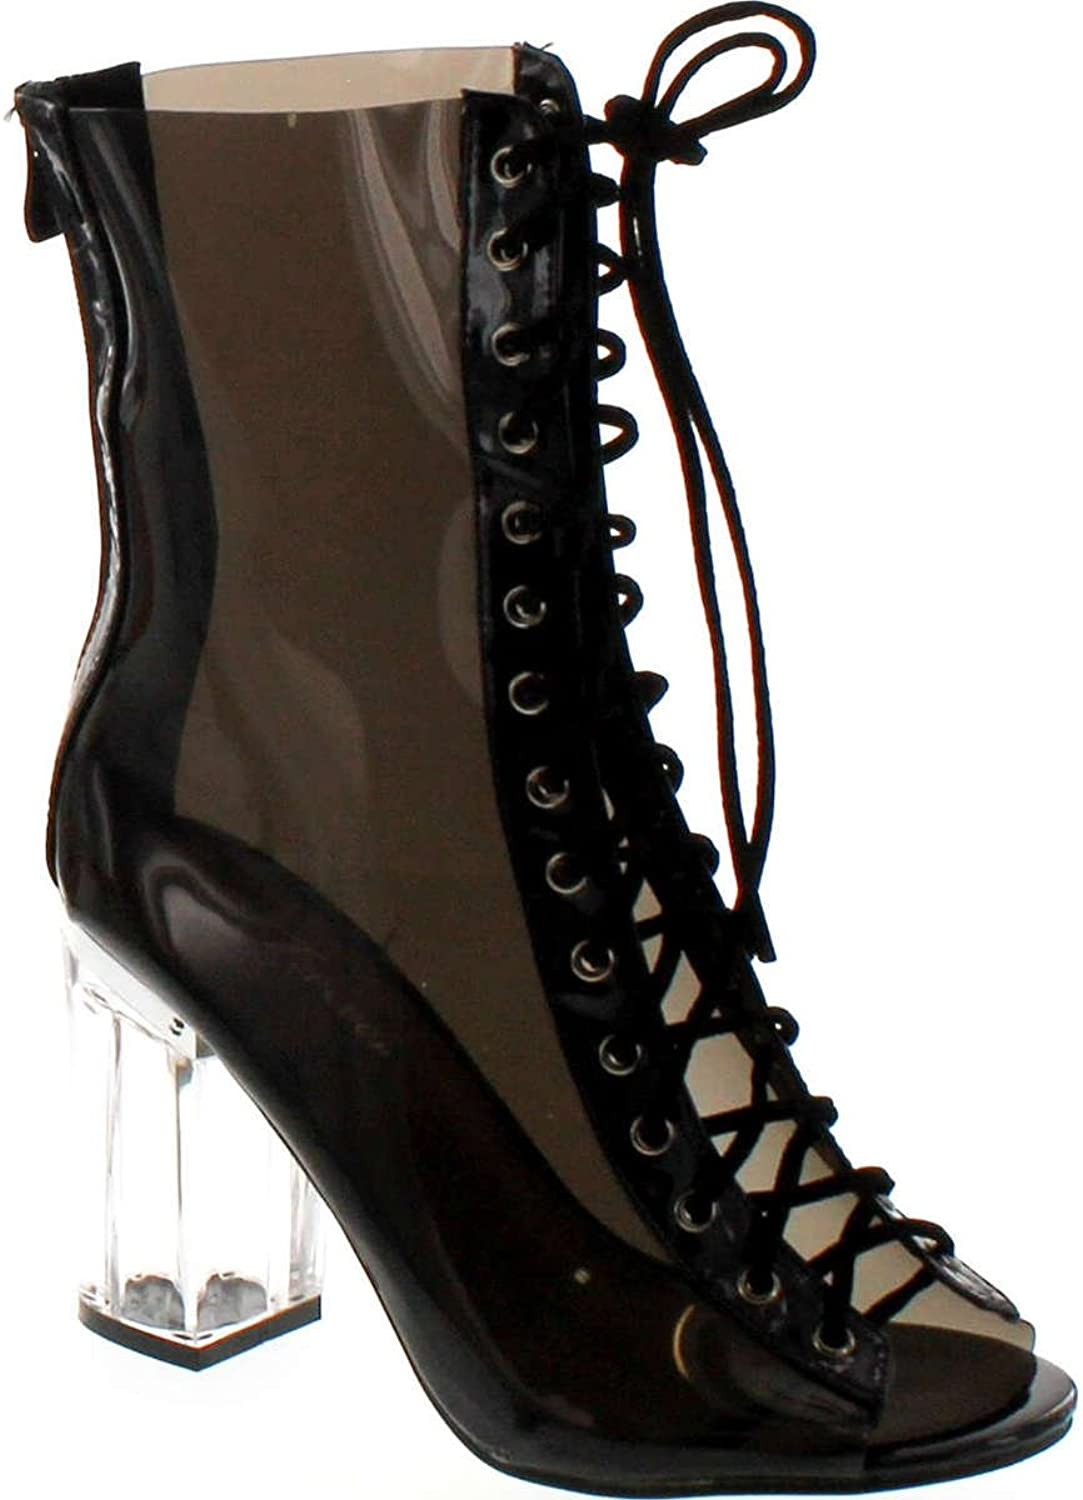 Forever Clear-45 Above Ankle Clear Peep Toe Lace Up Boots & Perspex Plexiglas Block Heel